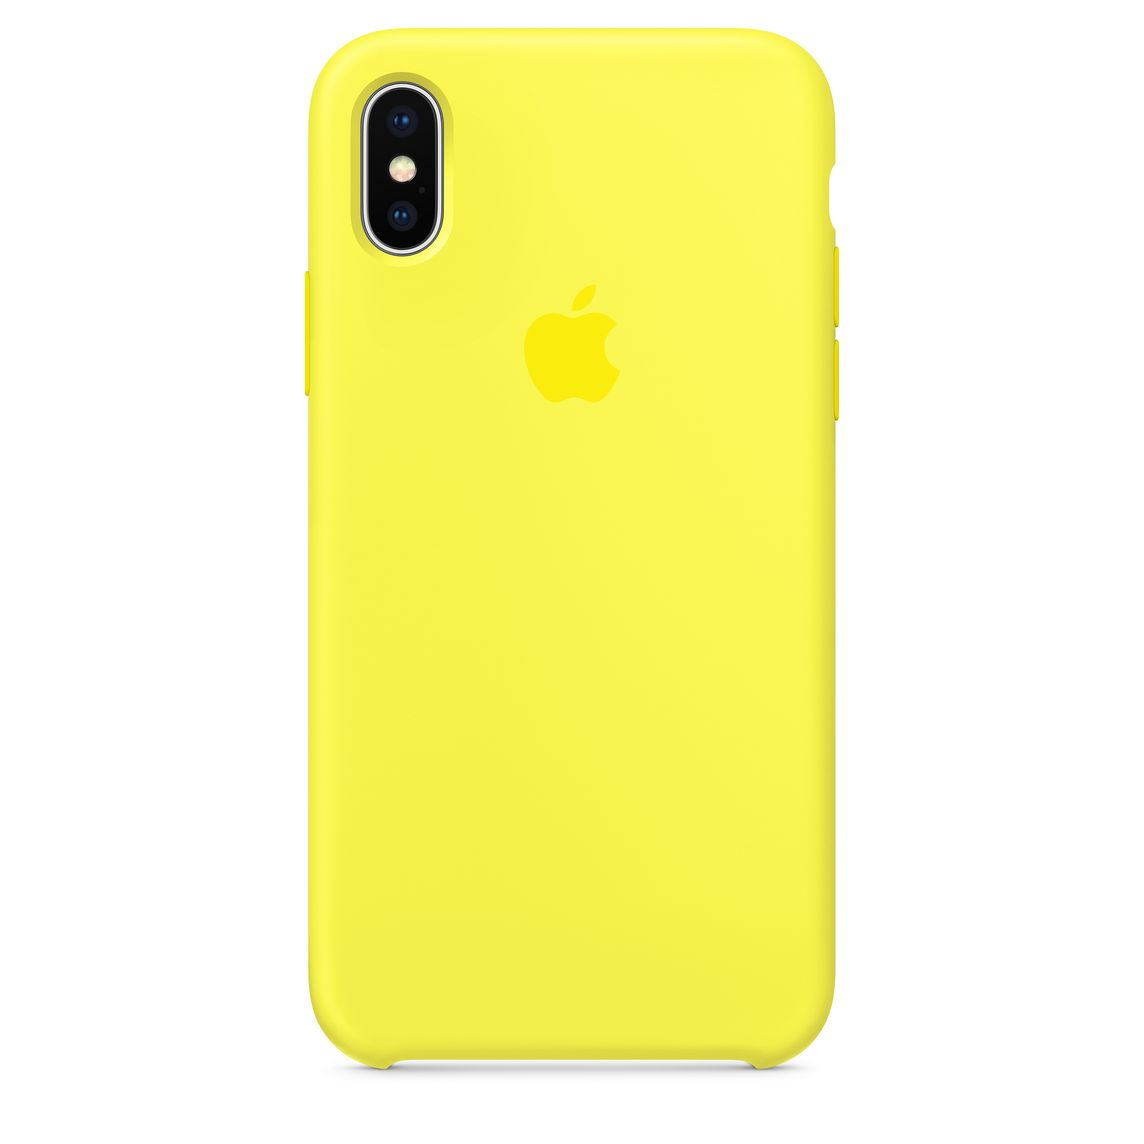 cheap for discount 6bd82 8f618 iPhone X Silicone Case - Flash